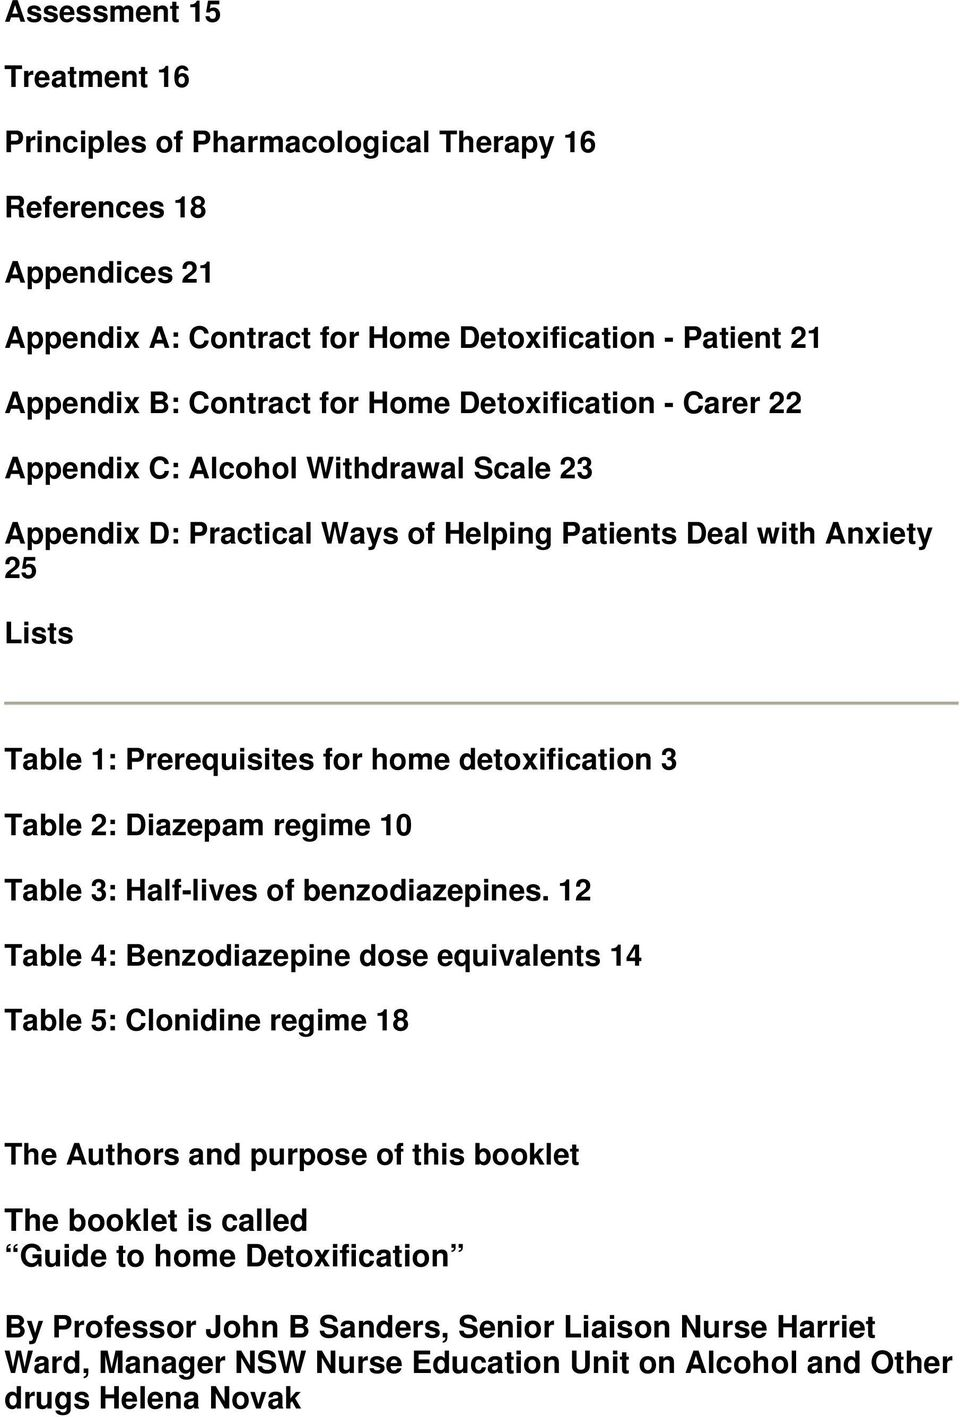 detoxification 3 Table 2: Diazepam regime 10 Table 3: Half-lives of benzodiazepines.